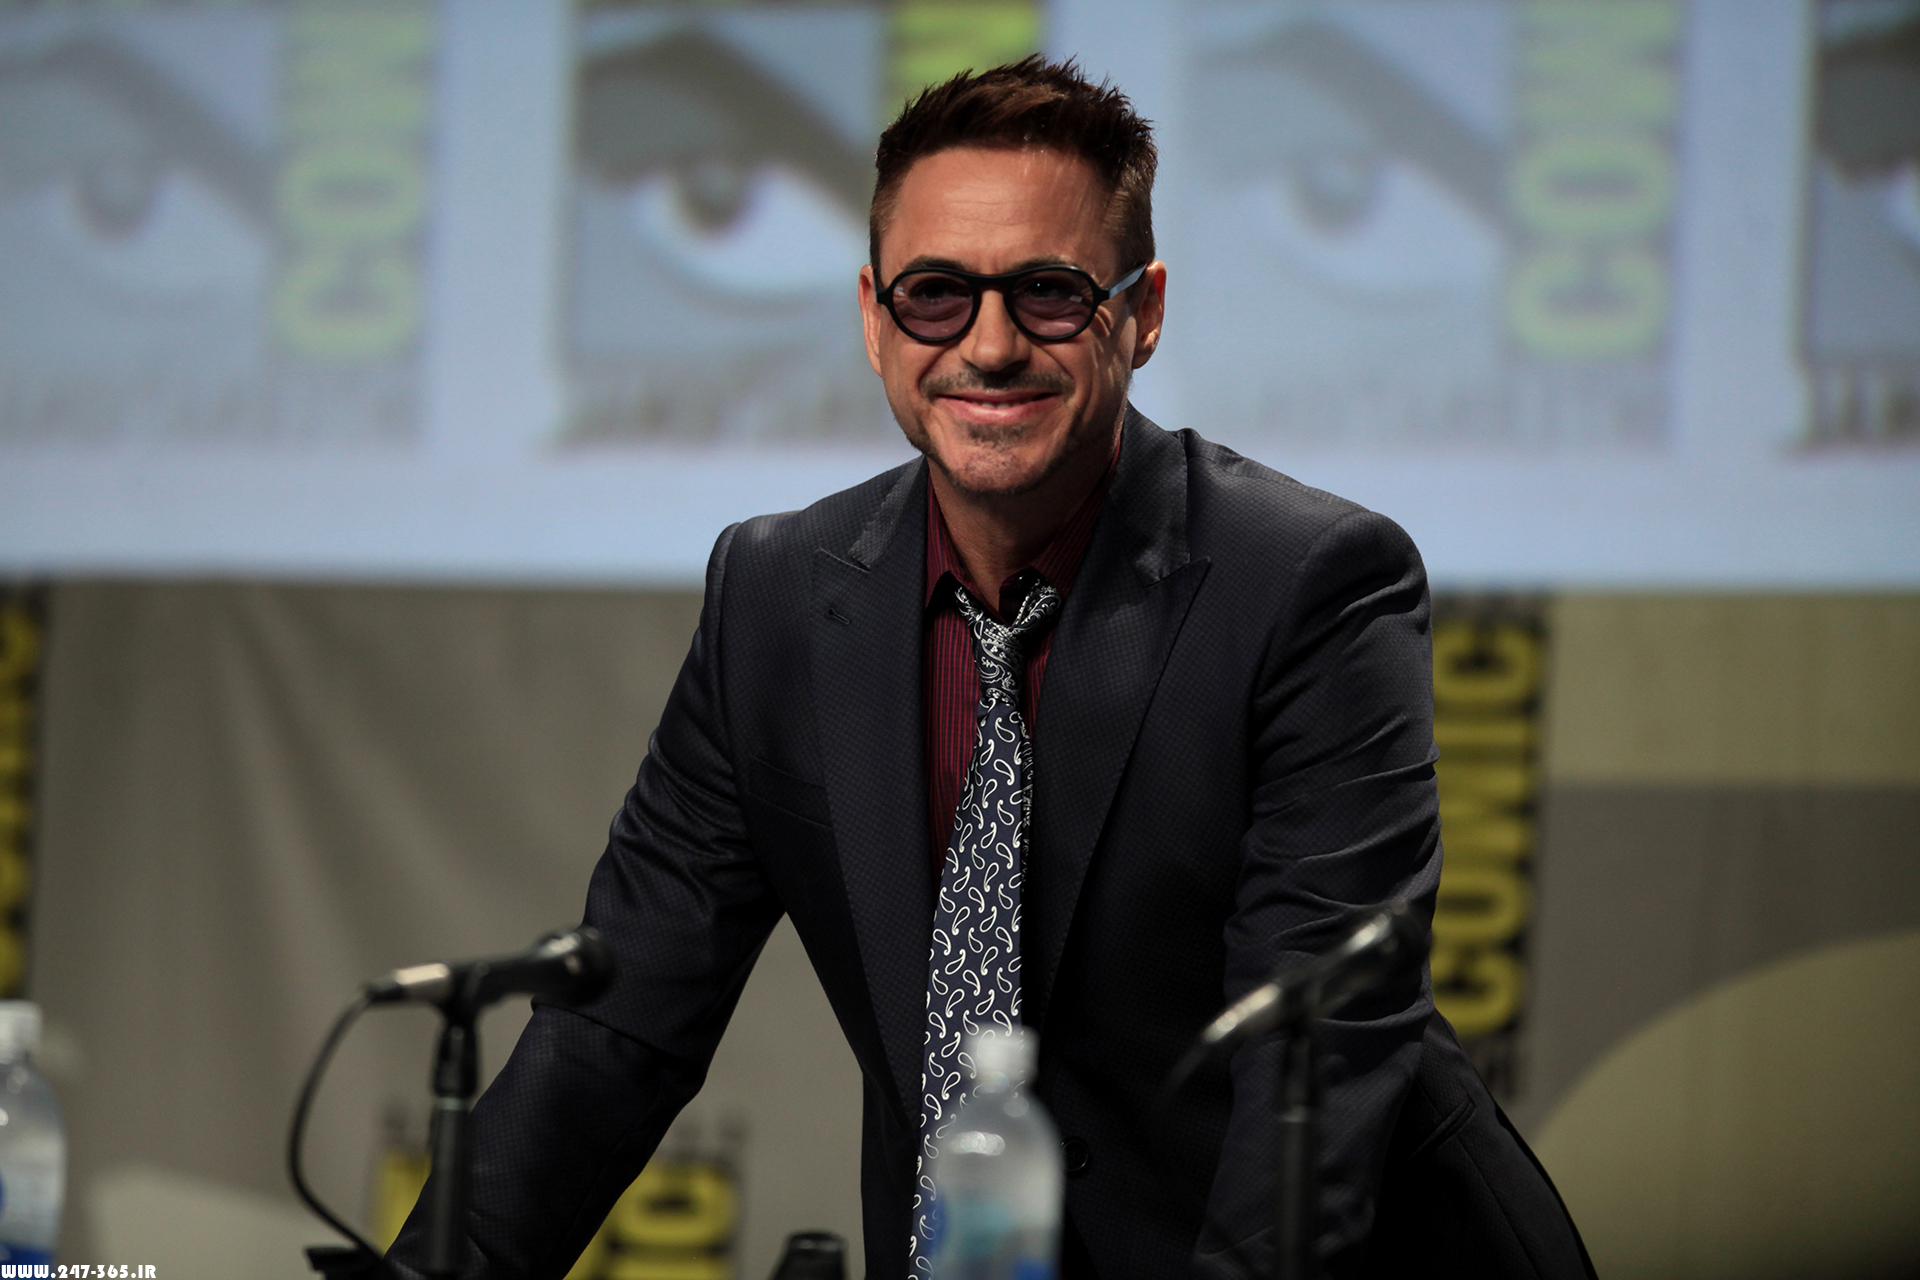 http://dl.247-365.ir/pic/celebrity/robert_downey_jr_2/Robert_Downey_Jr_2_03.jpg